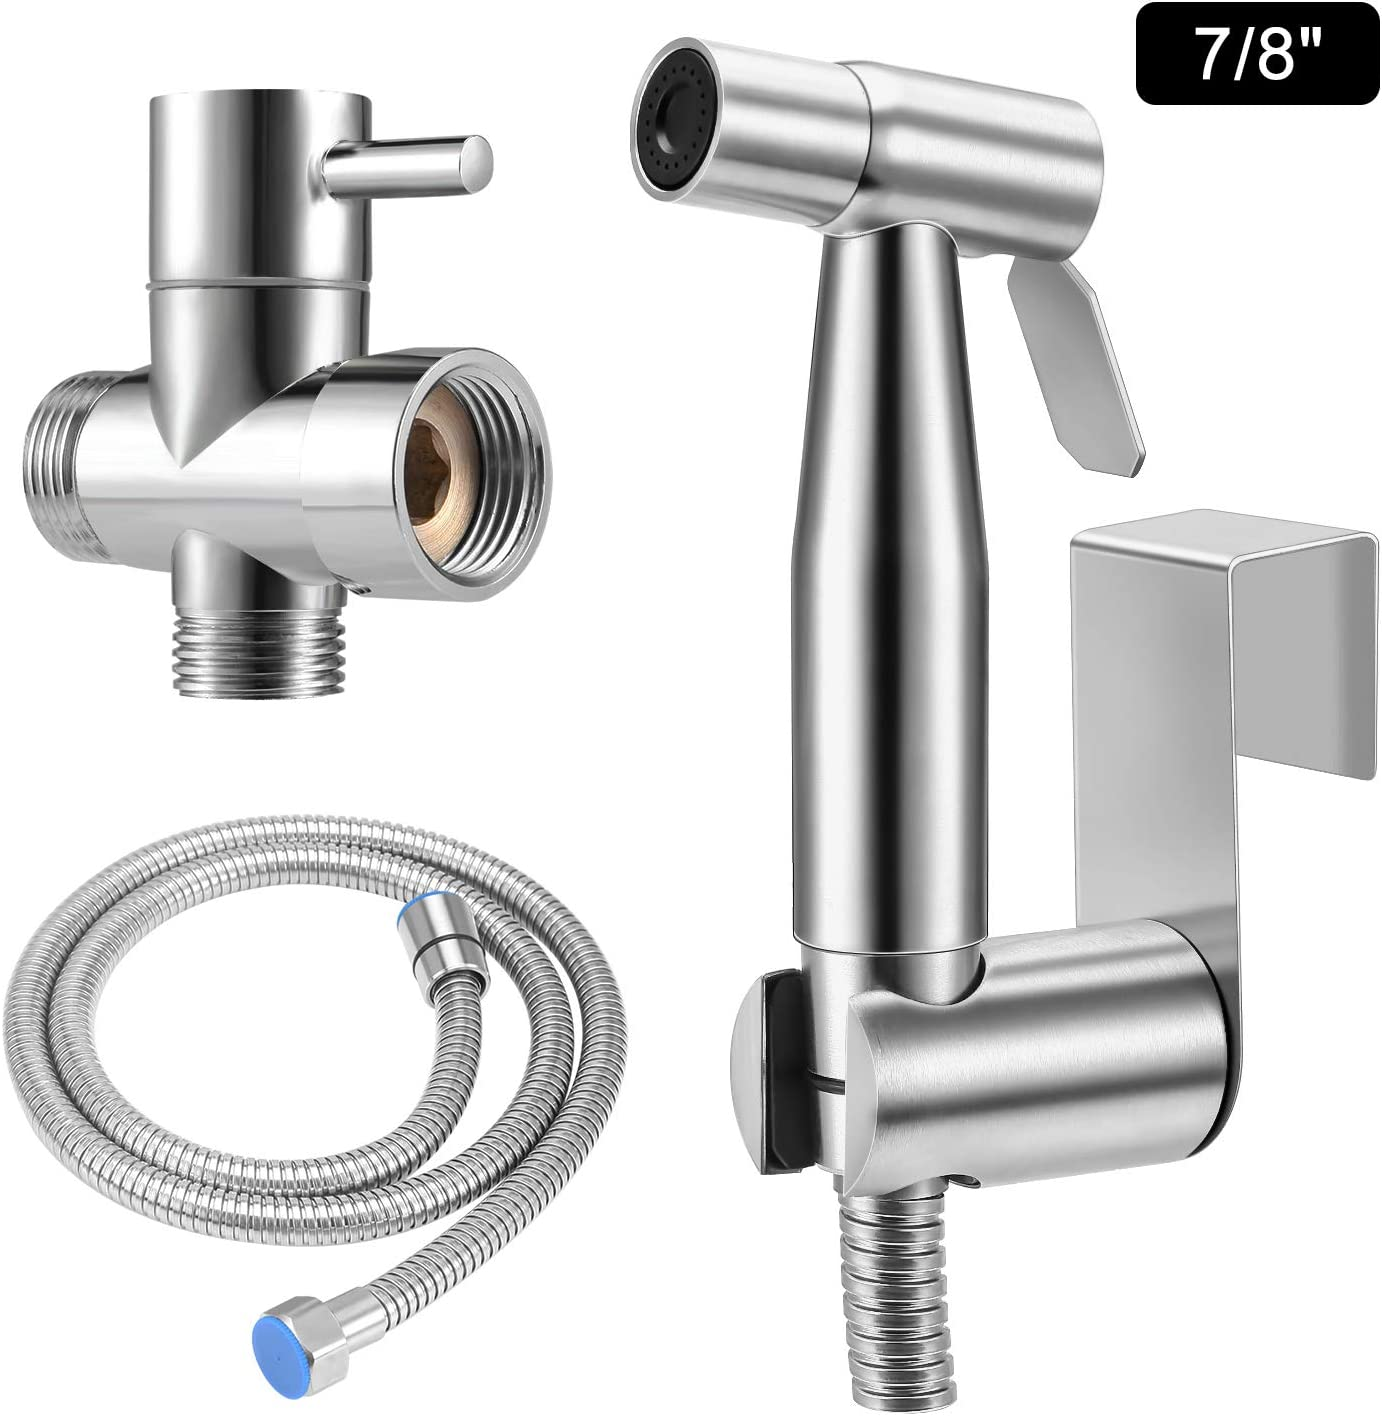 Amazon Com Bidet Sprayer For Toilet Nacot Handheld Baby Cloth Diaper Sprayer With Anti Leaking Hose For Women Baby And Pets Bathroom Stainless Steel Toilet Cleaning Sprayer With 2 Water Pressure Modes Home Improvement